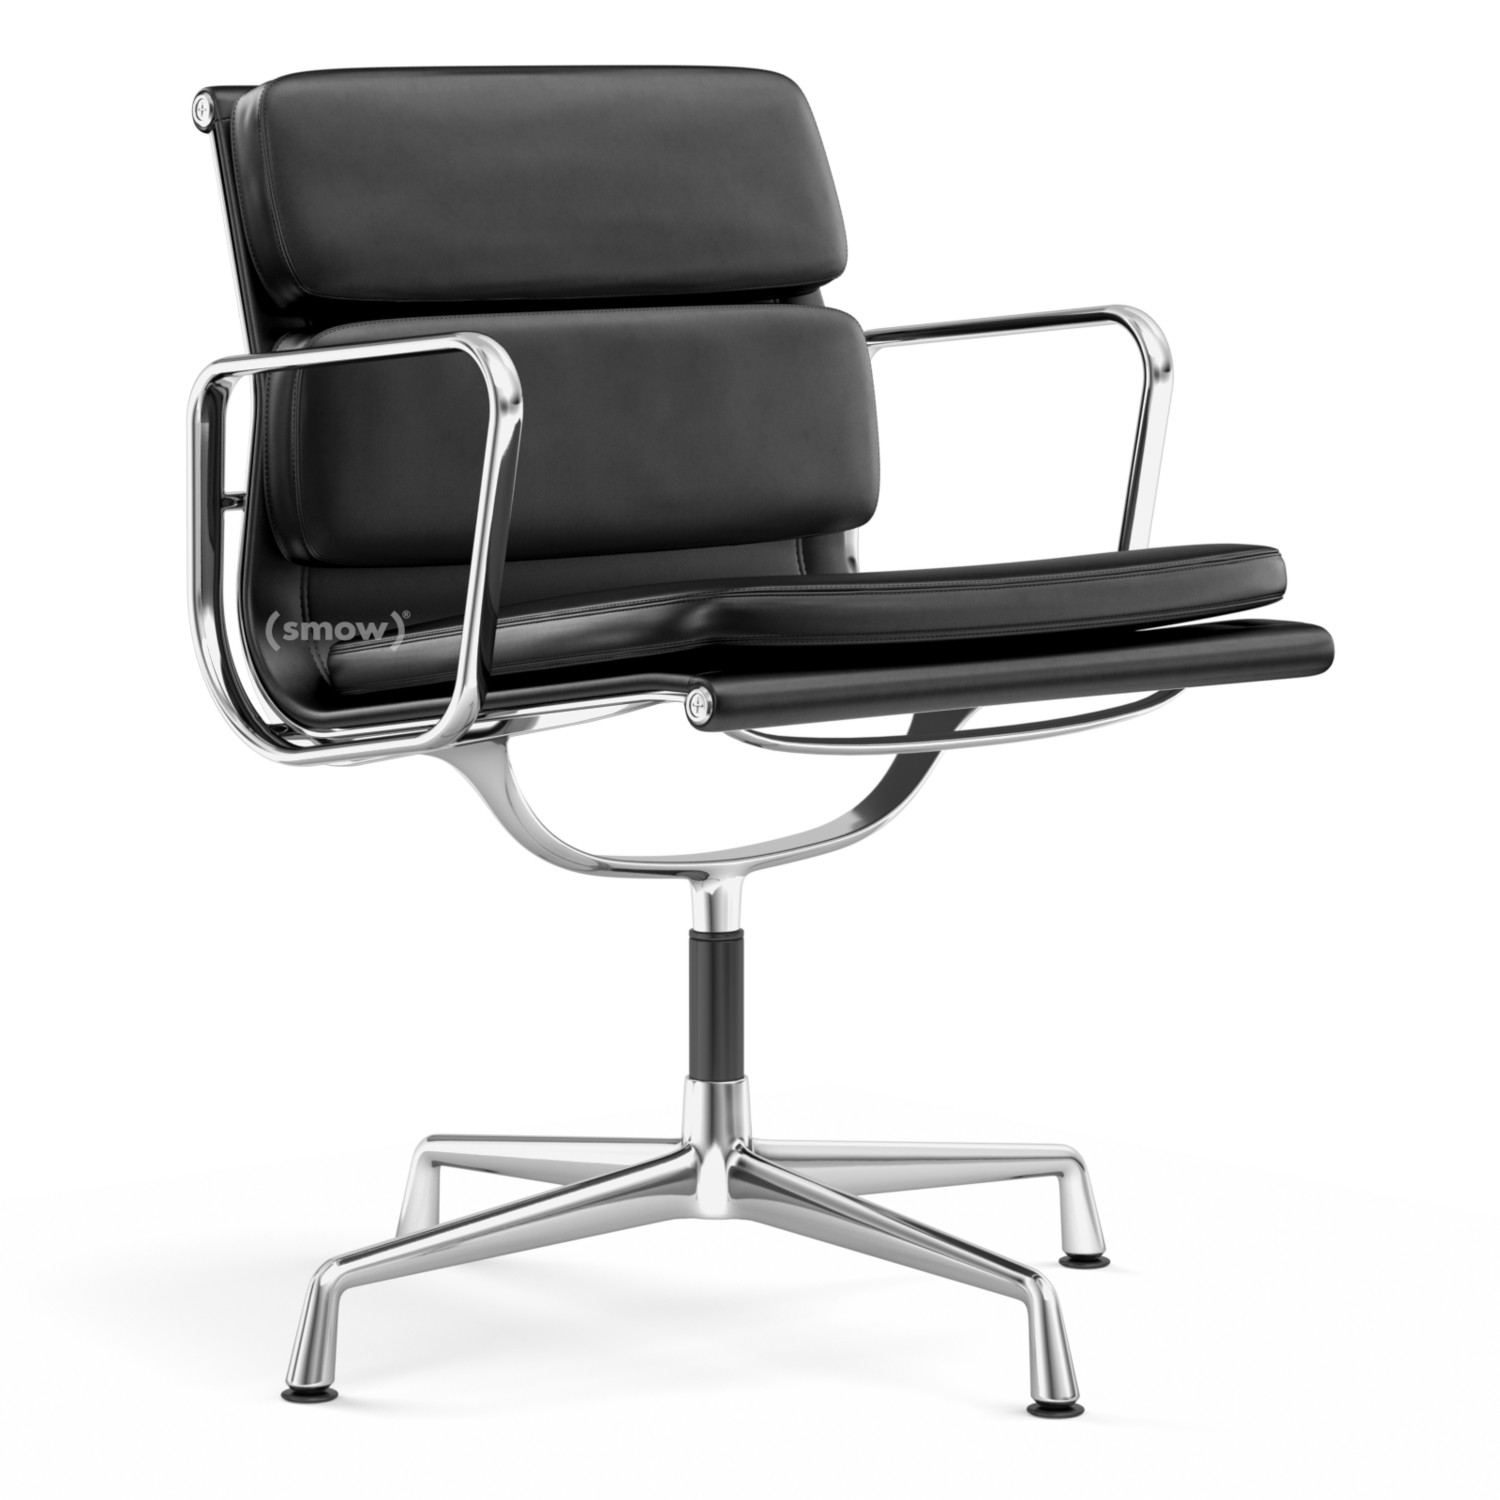 Vitra Aluminium Group EA 207 EA 208 by Charles & Ray Eames 1969